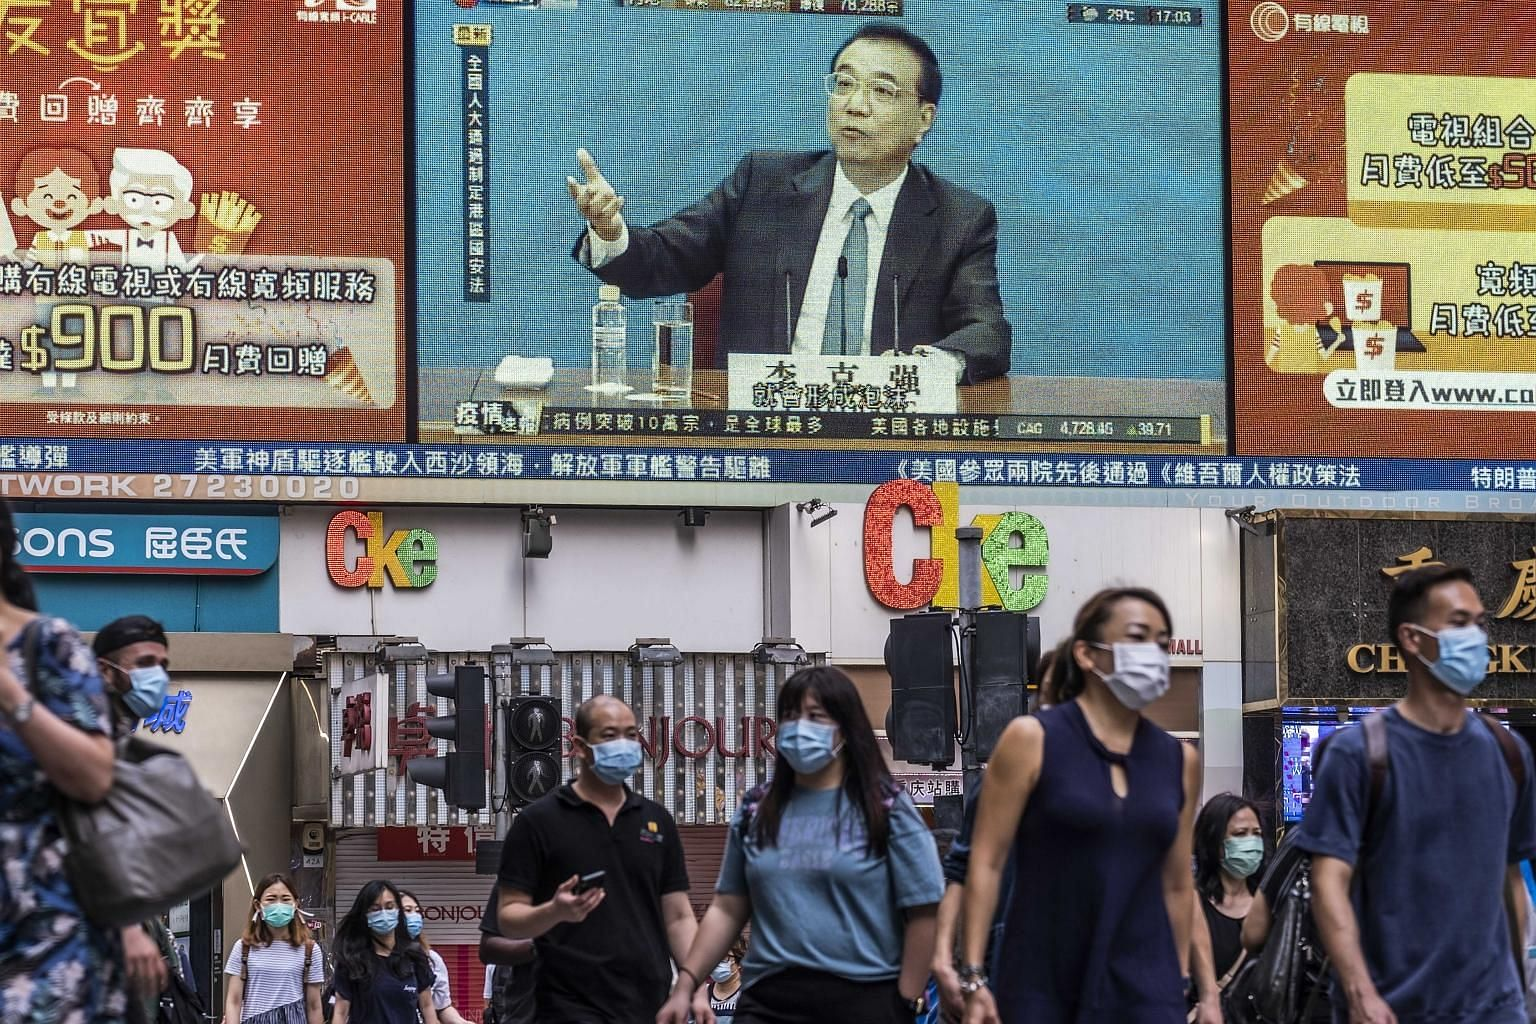 Chinese premier Li Keqiang, seen speaking on an outdoor video screen in Hong Kong on Thursday. The emergence of China's national security Bill and the United States response that it can no longer certify Hong Kong's political autonomy is stoking conc